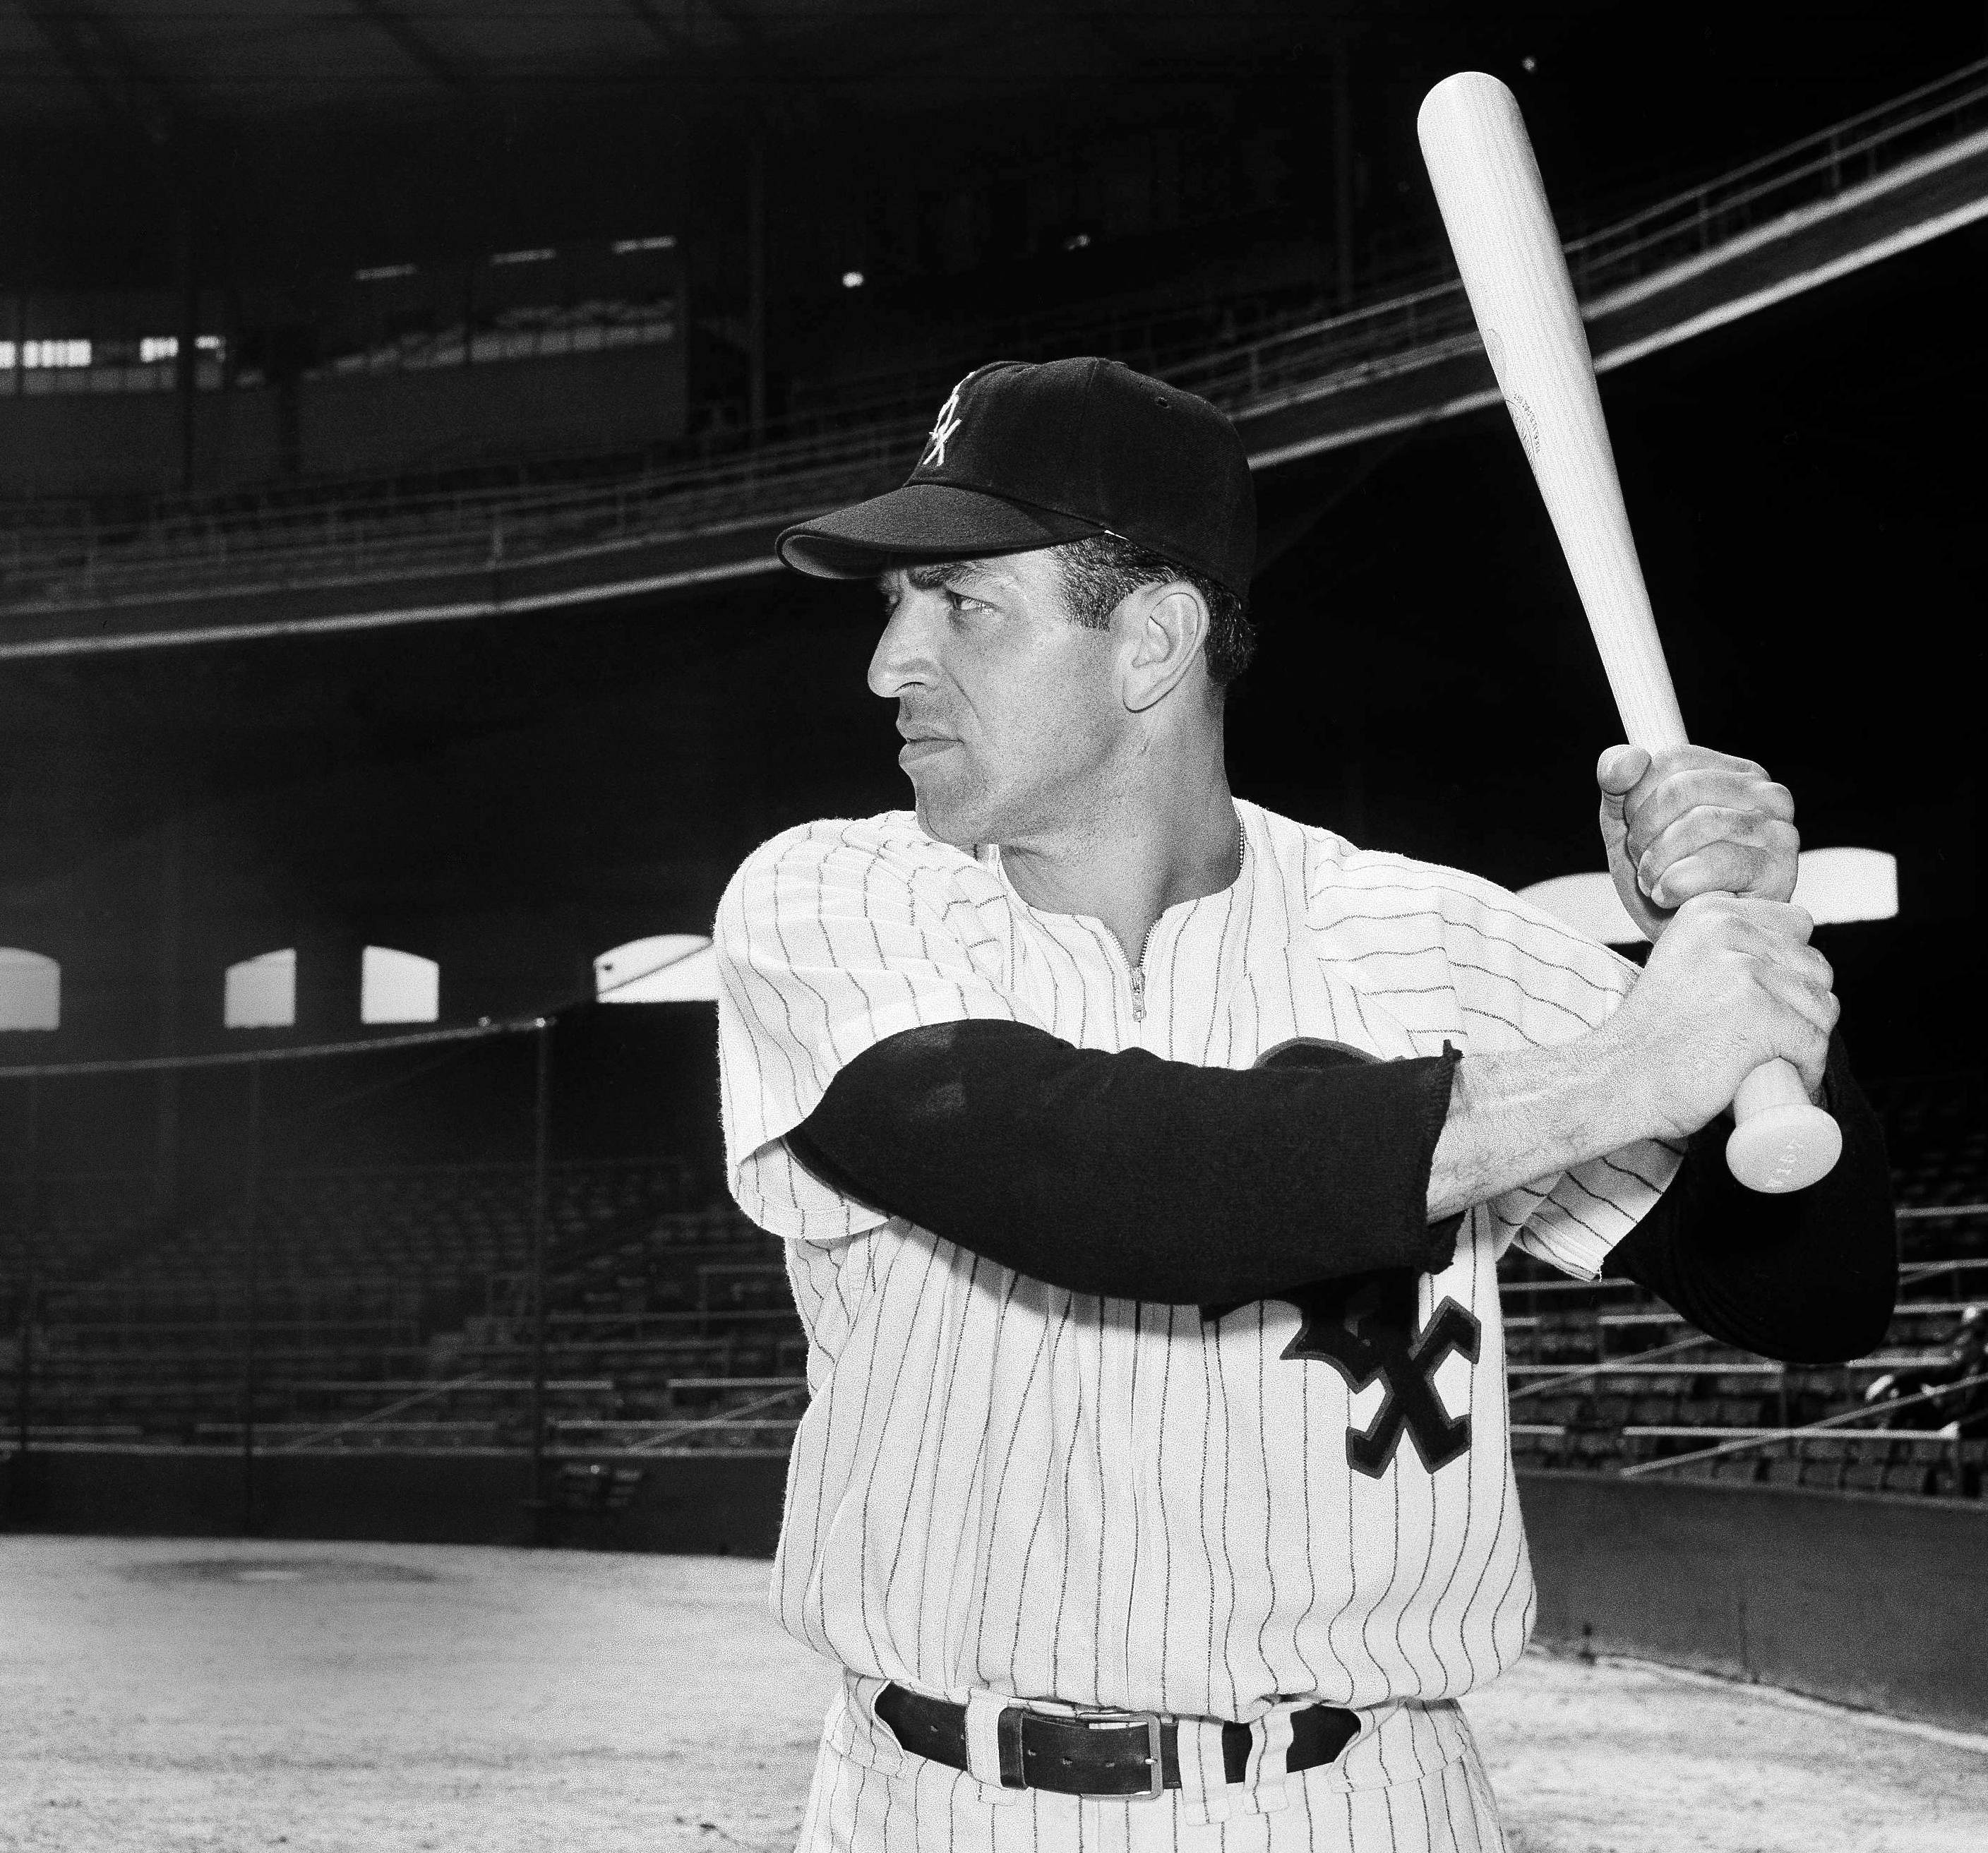 Jim Rivera, who played for the Chicago White Sox from 1952 to 1961, died Monday night at age 96. Rivera led the American League in triples in 1953.